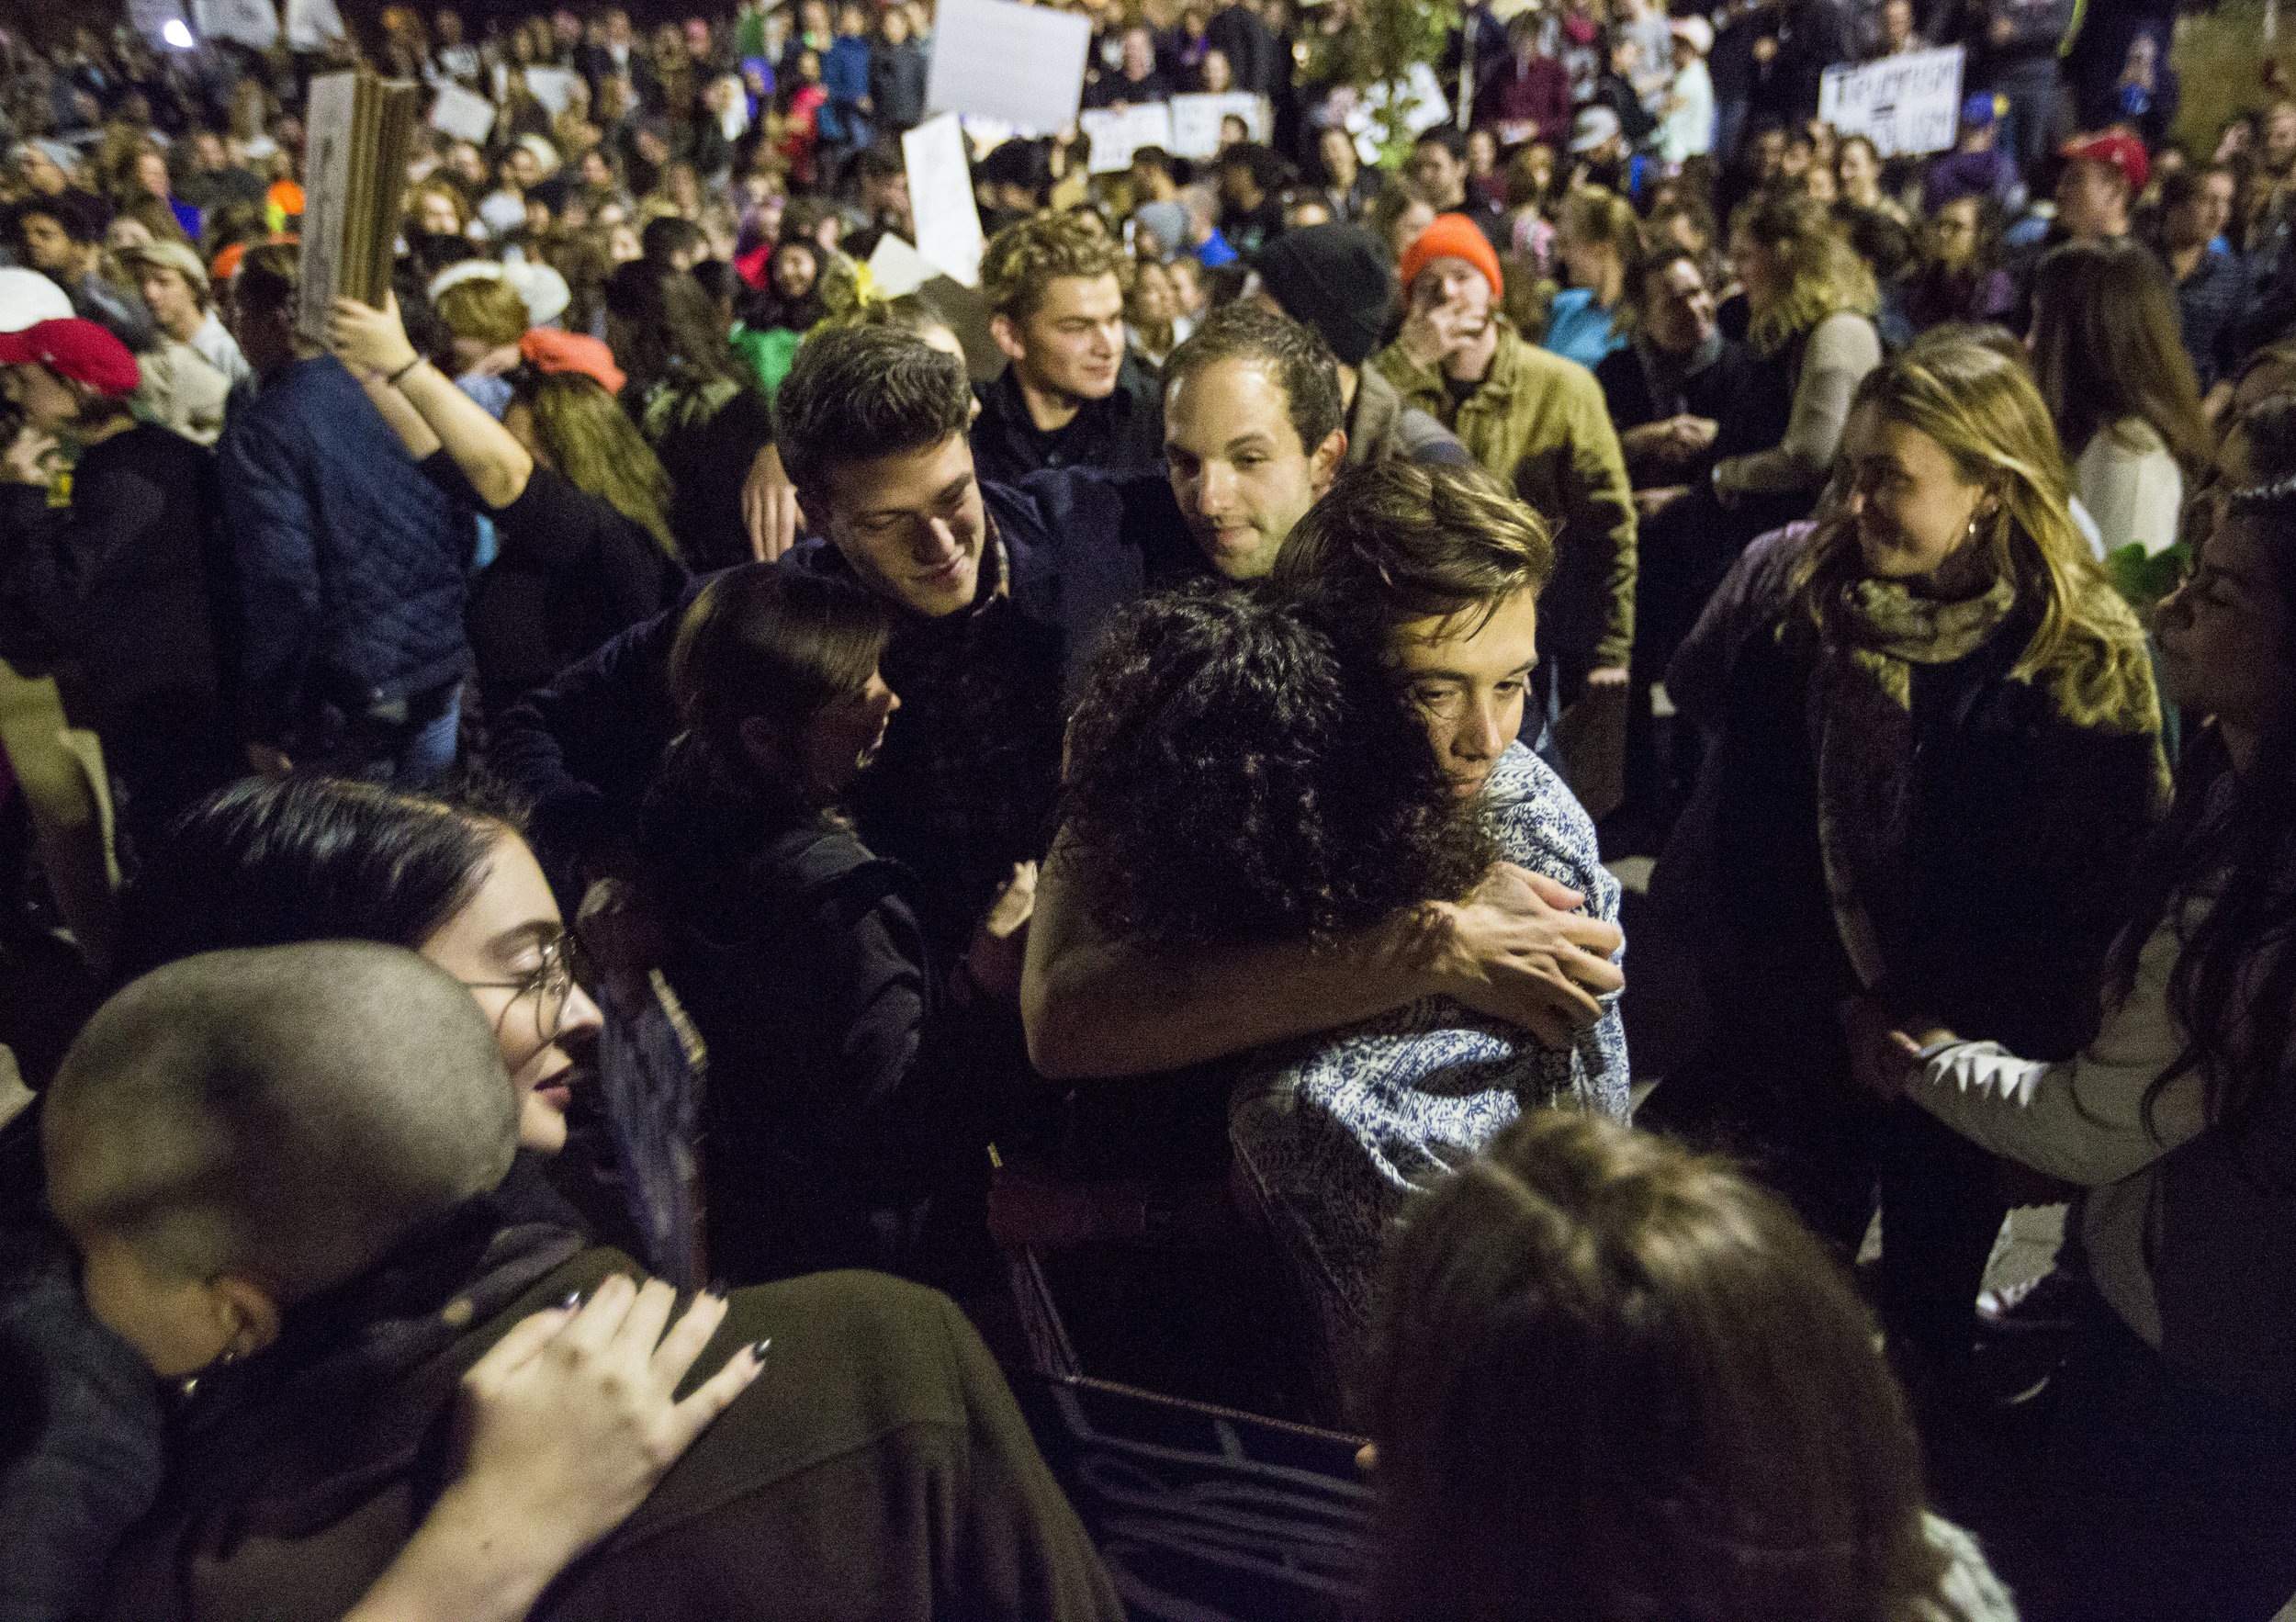 Protesters comfort each other with hugs during an anti-Trump rally on Nov 10, 2016 in Madison, WI.